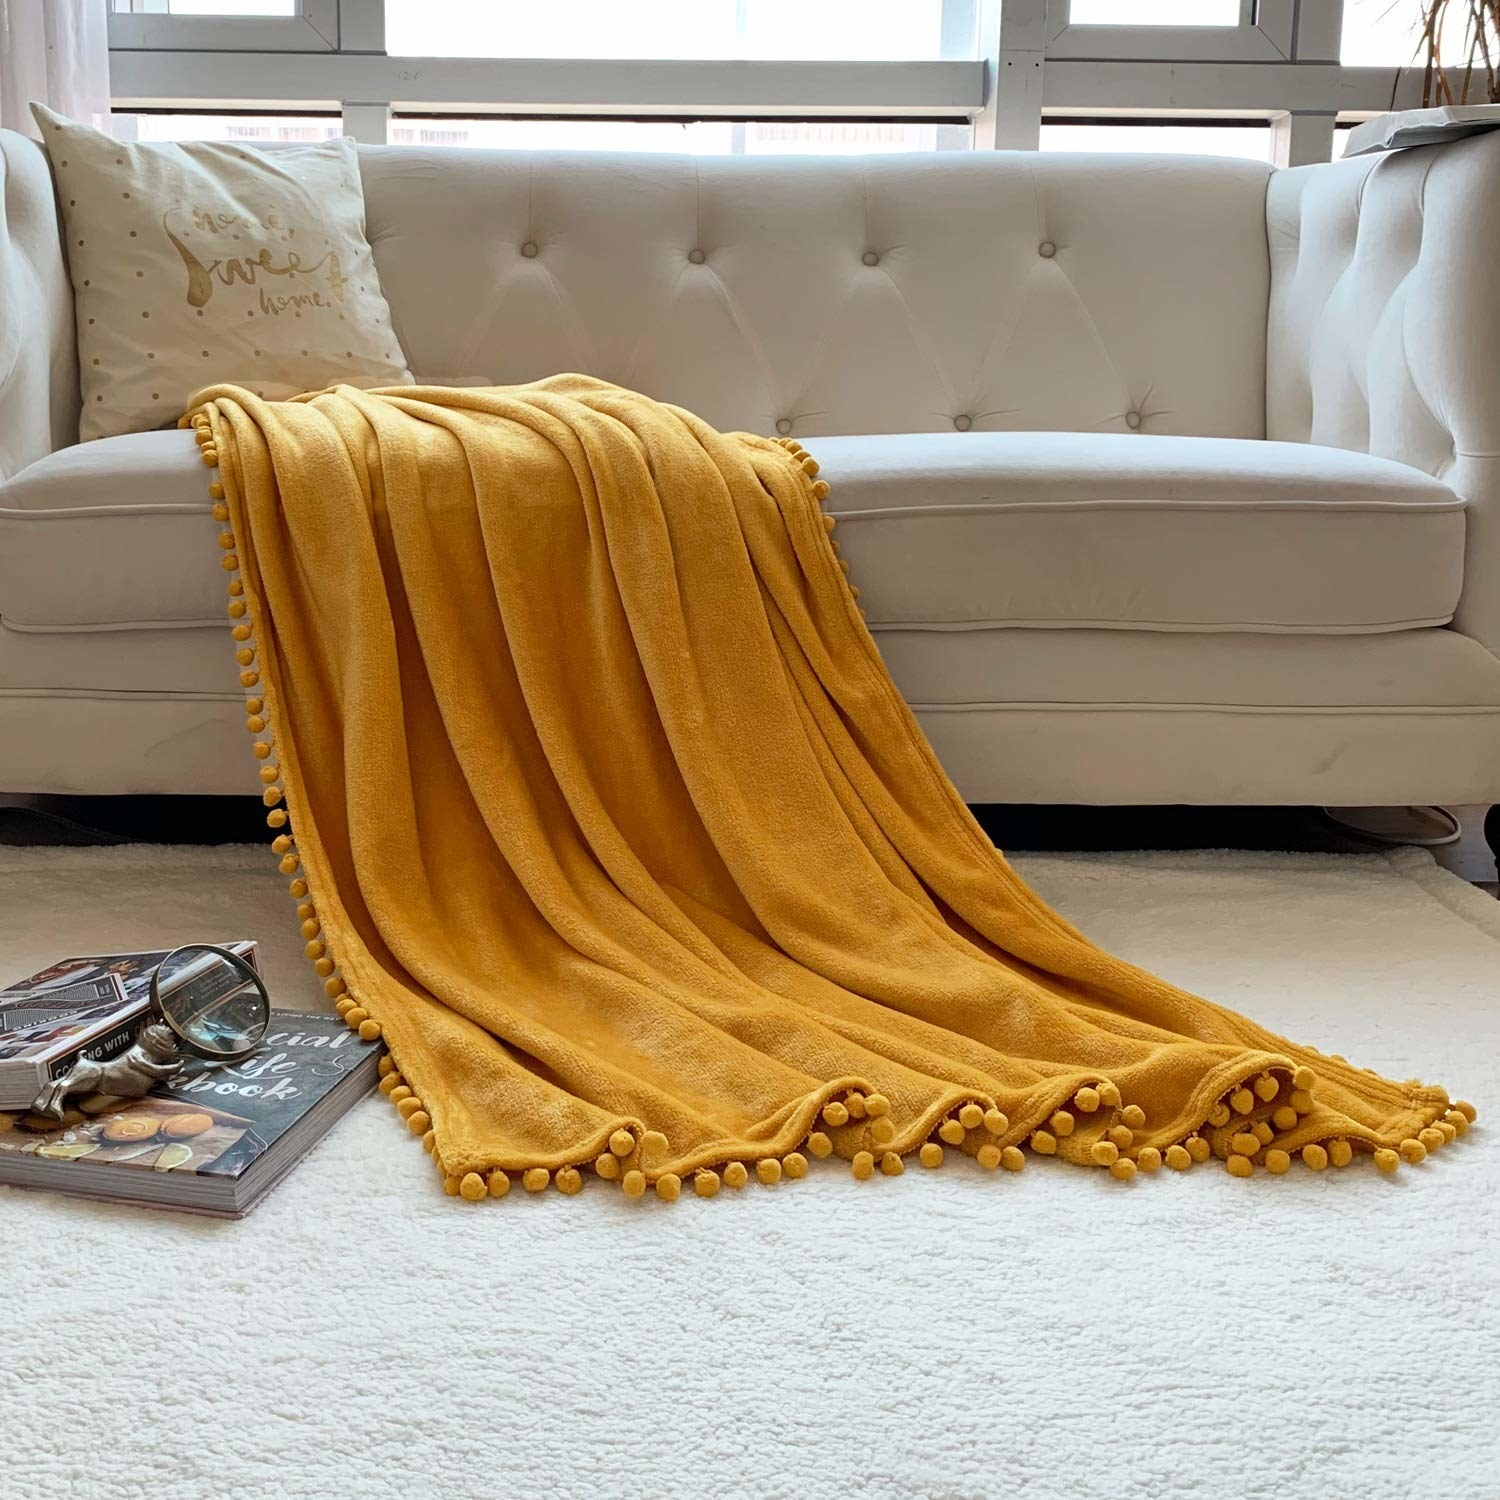 A gold yellow blanket with pom pom edges